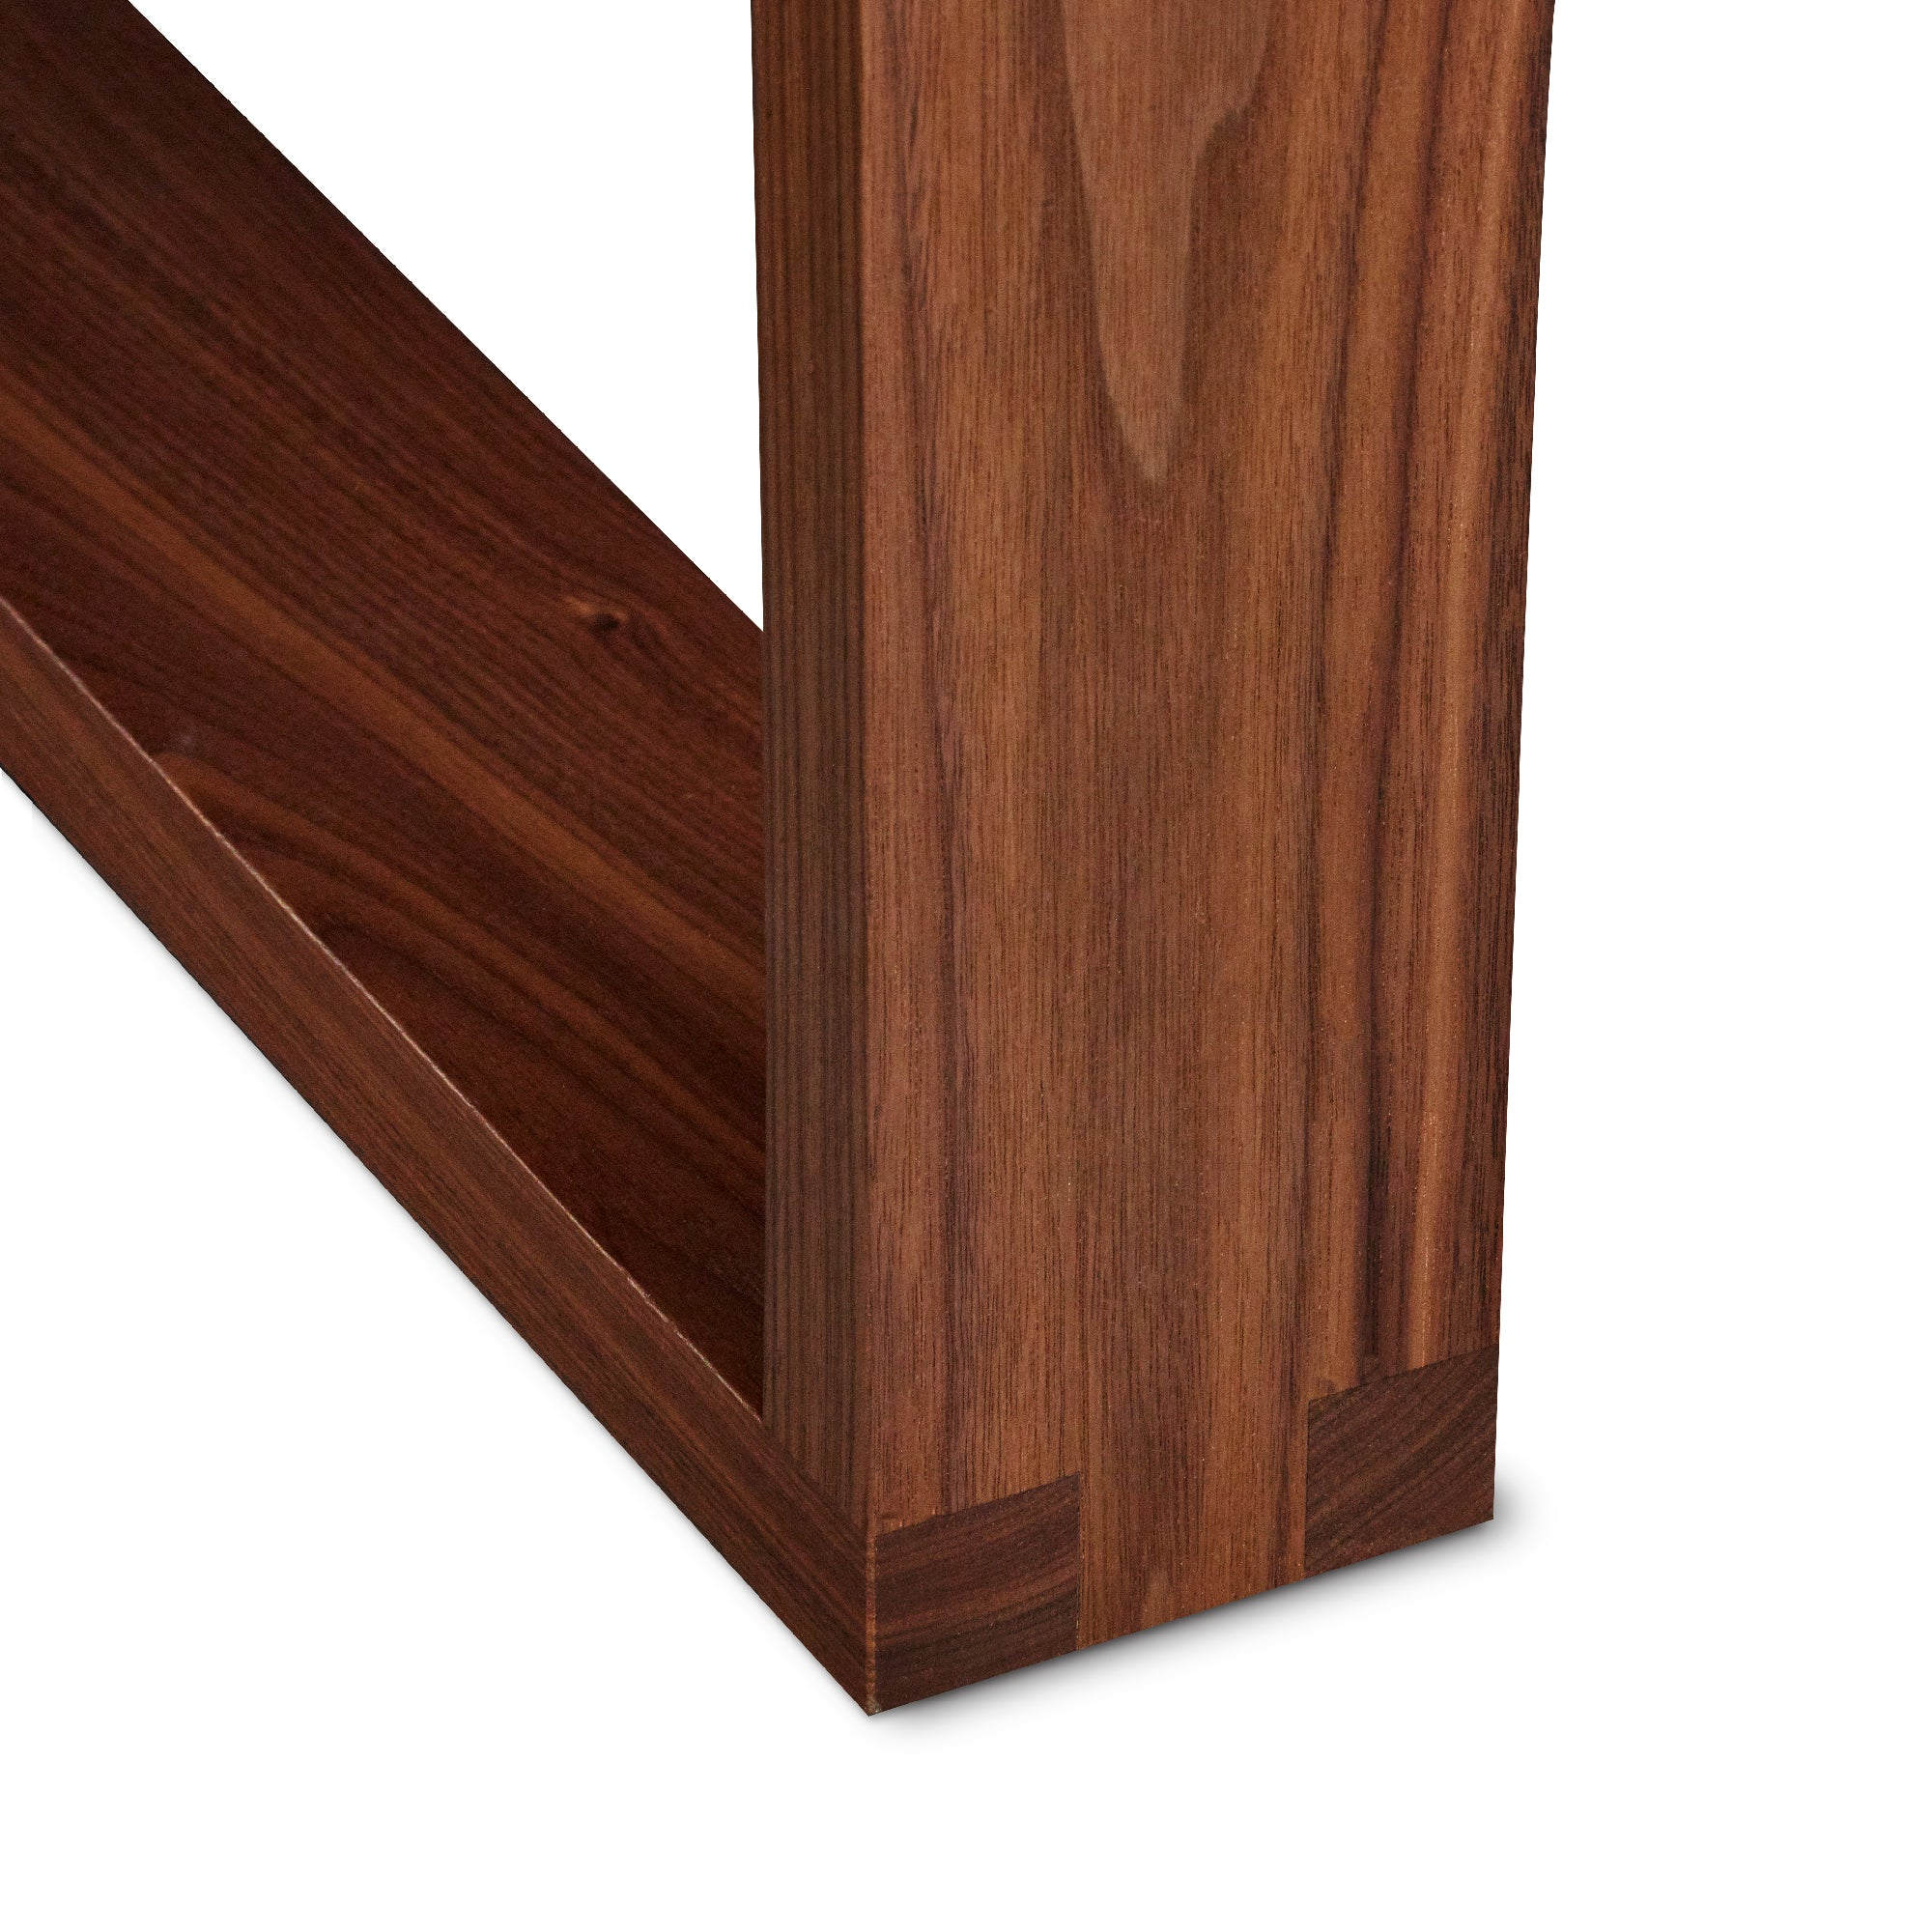 Up close photo of joinery on walnut Lokie Coffee Table